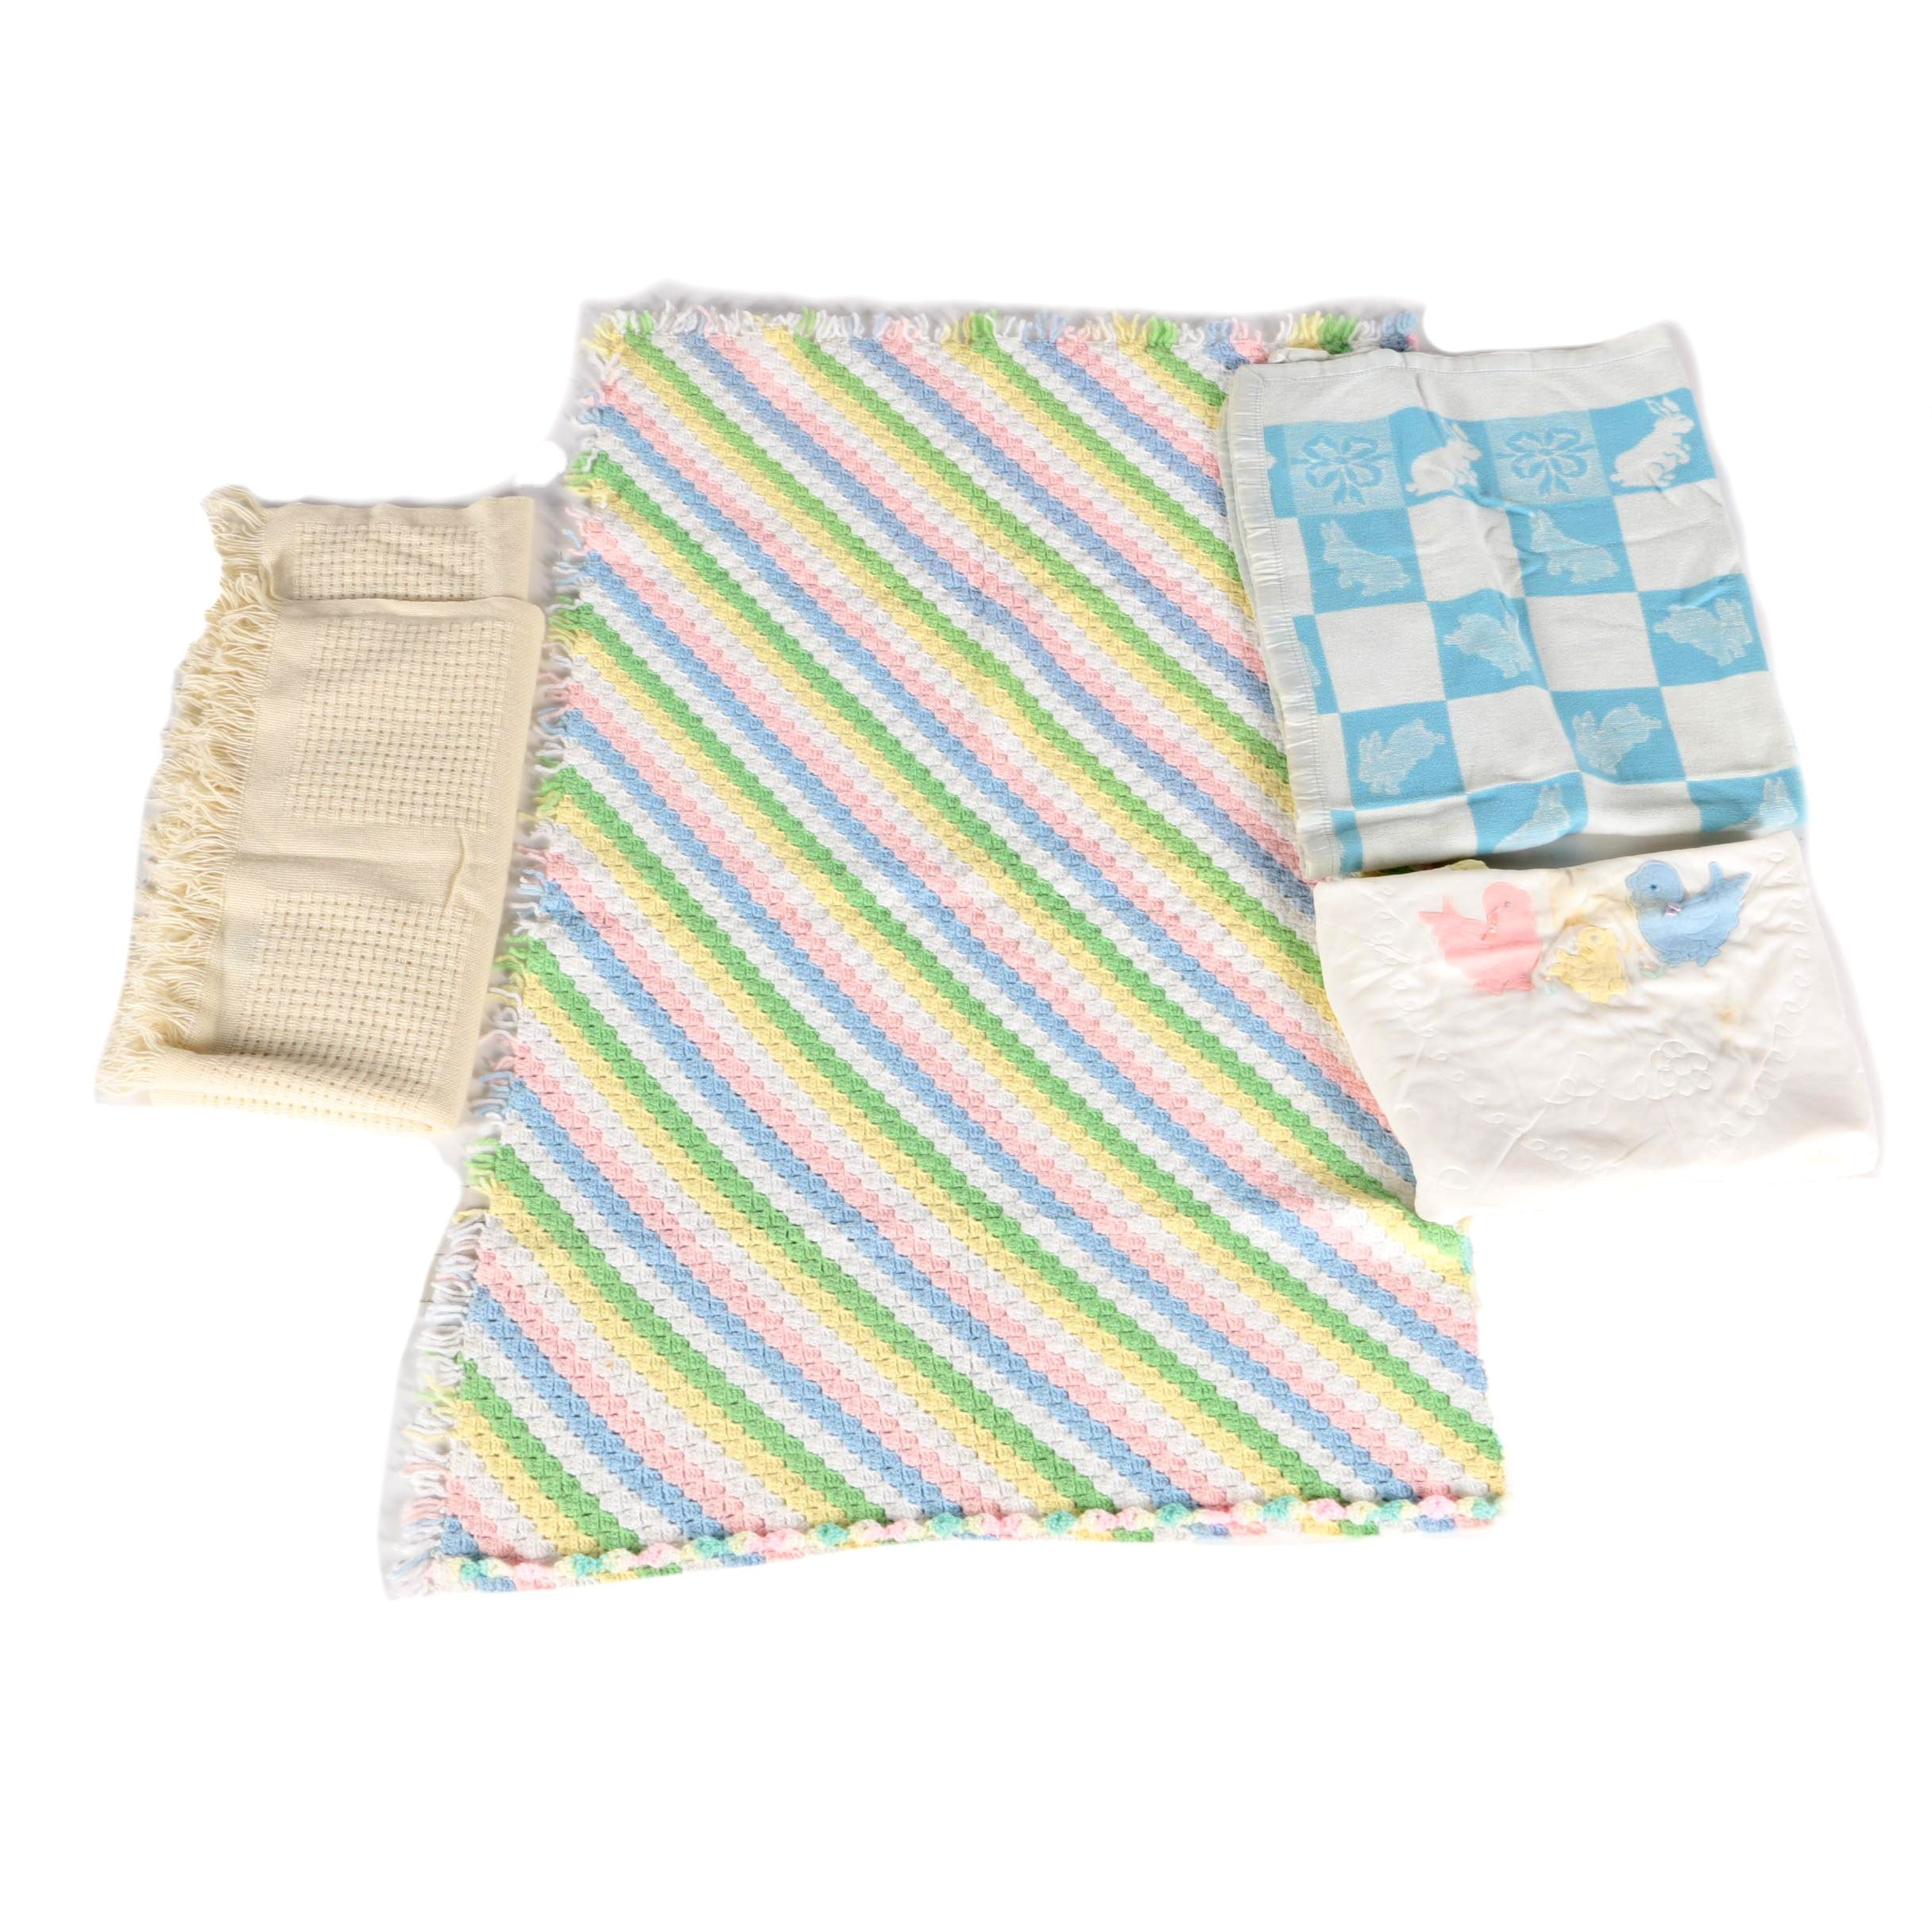 Vintage Baby Blankets Featuring Faribo